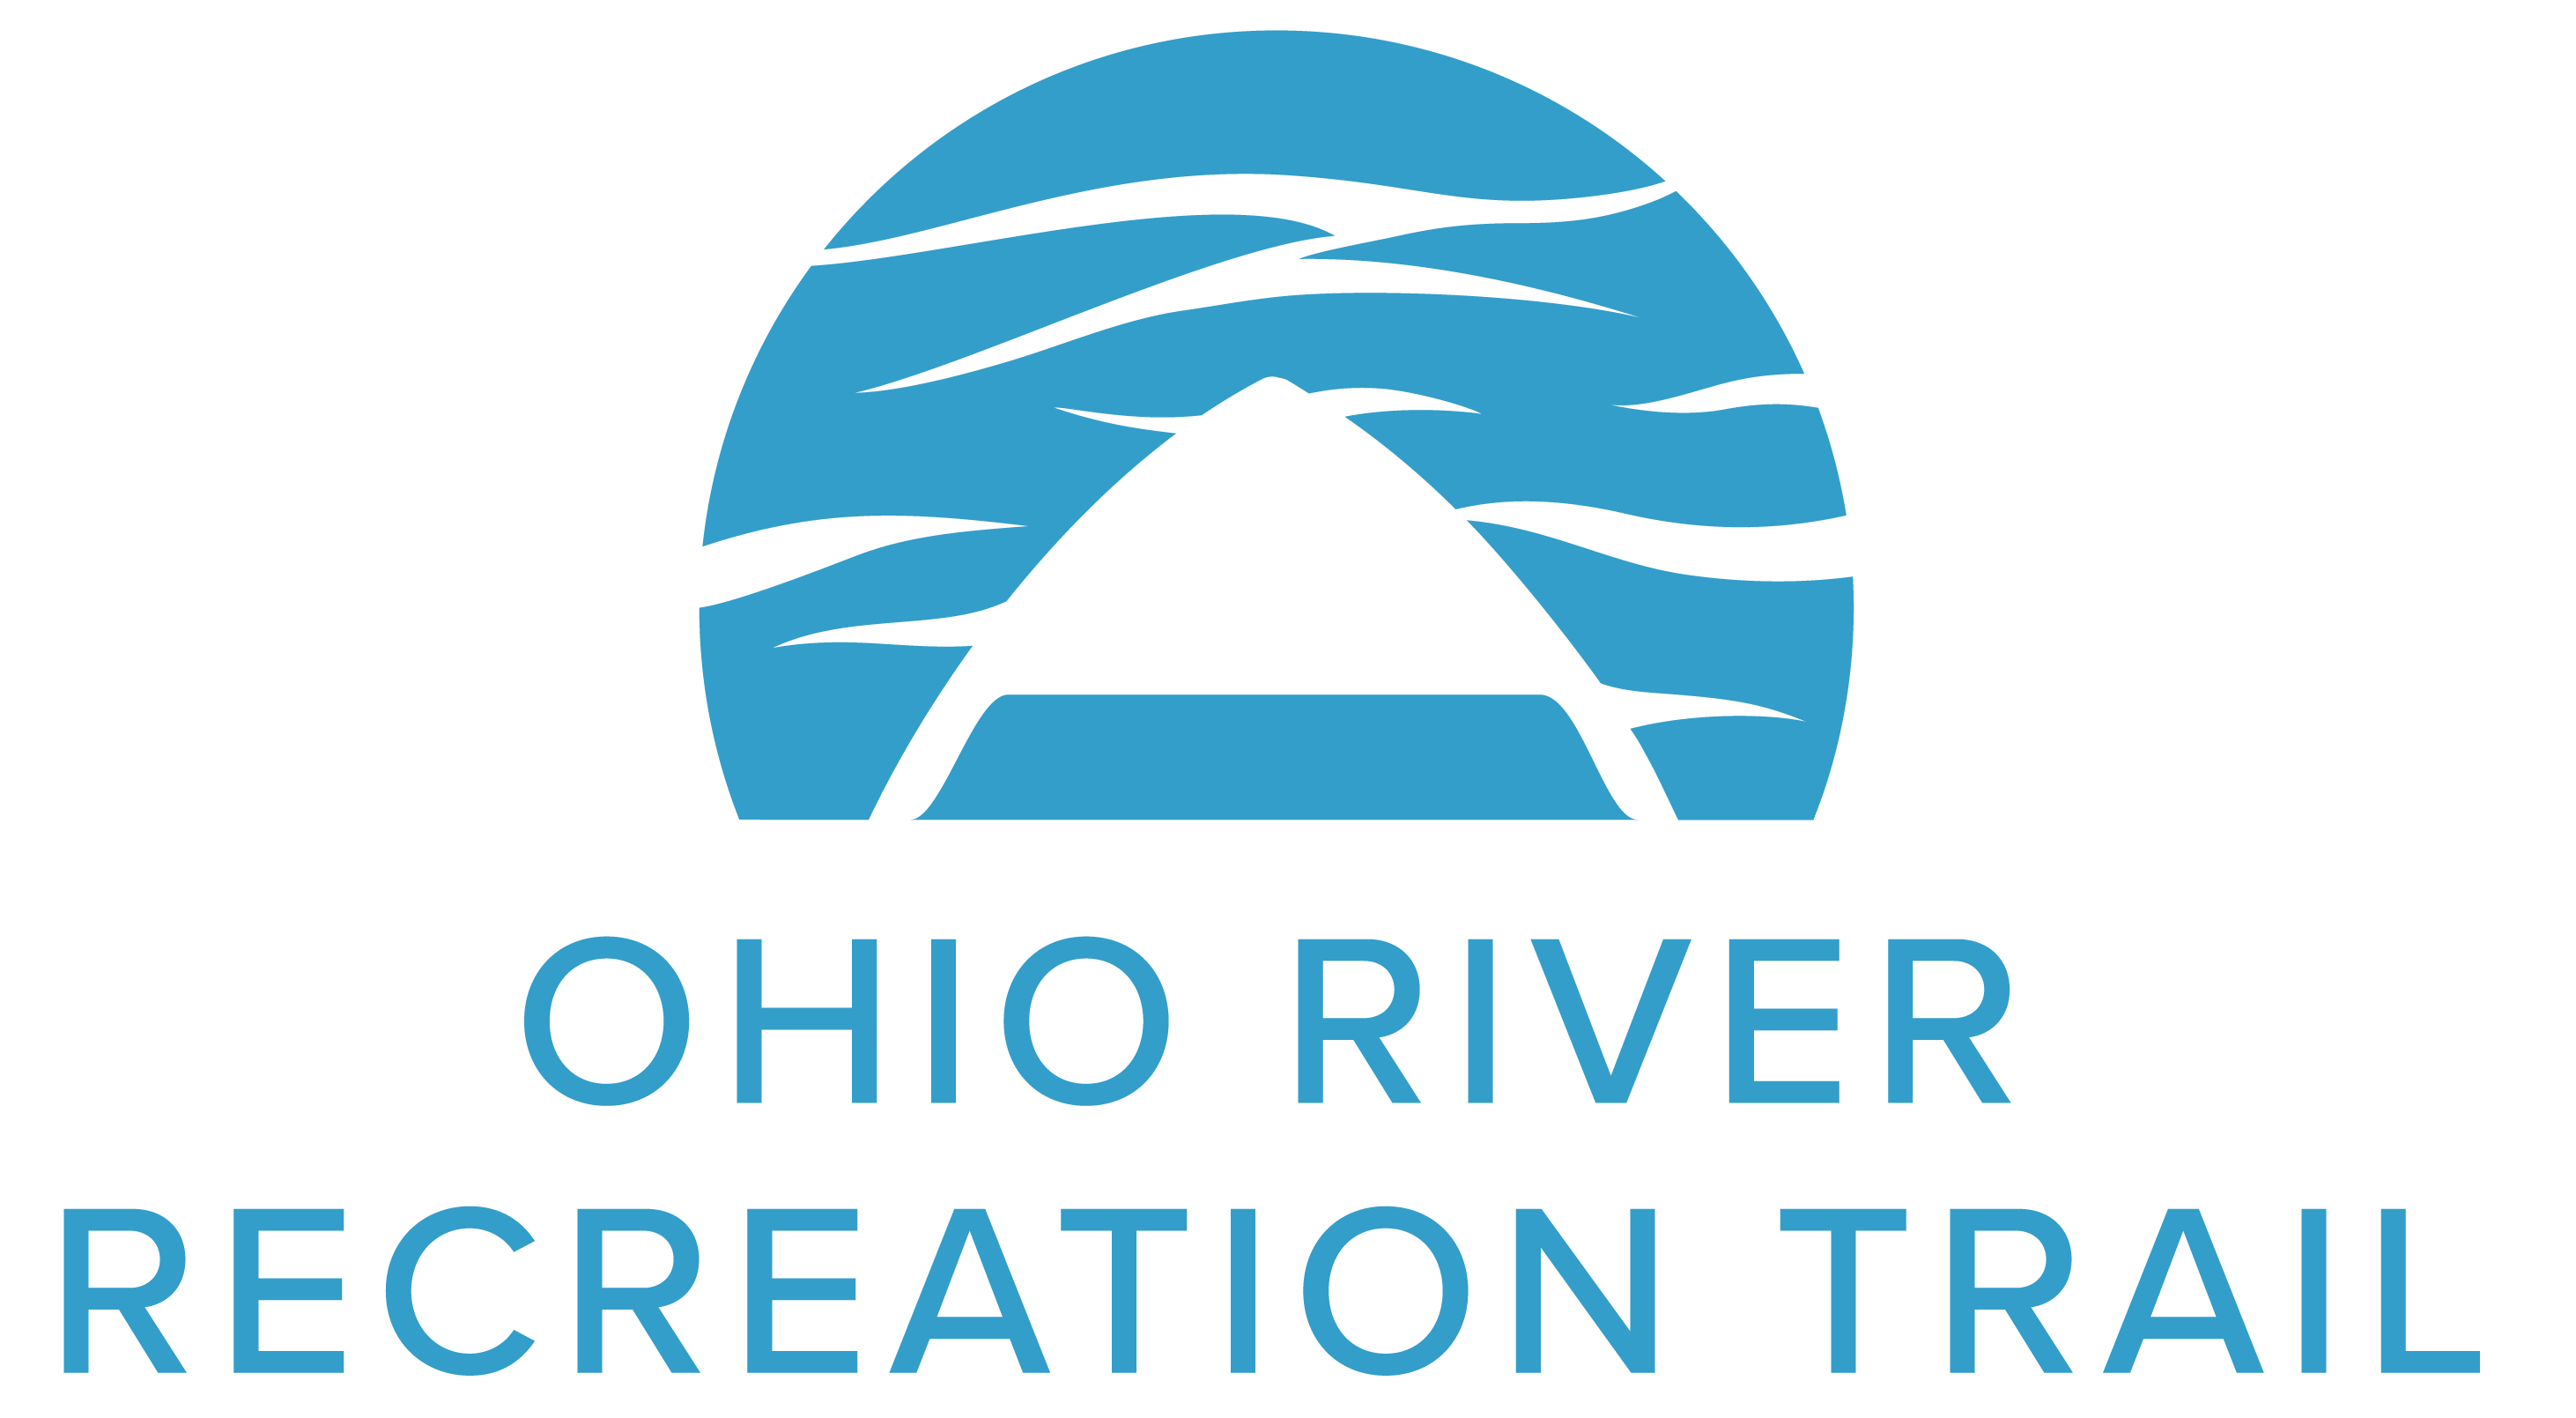 Ohio River Recreation Trail